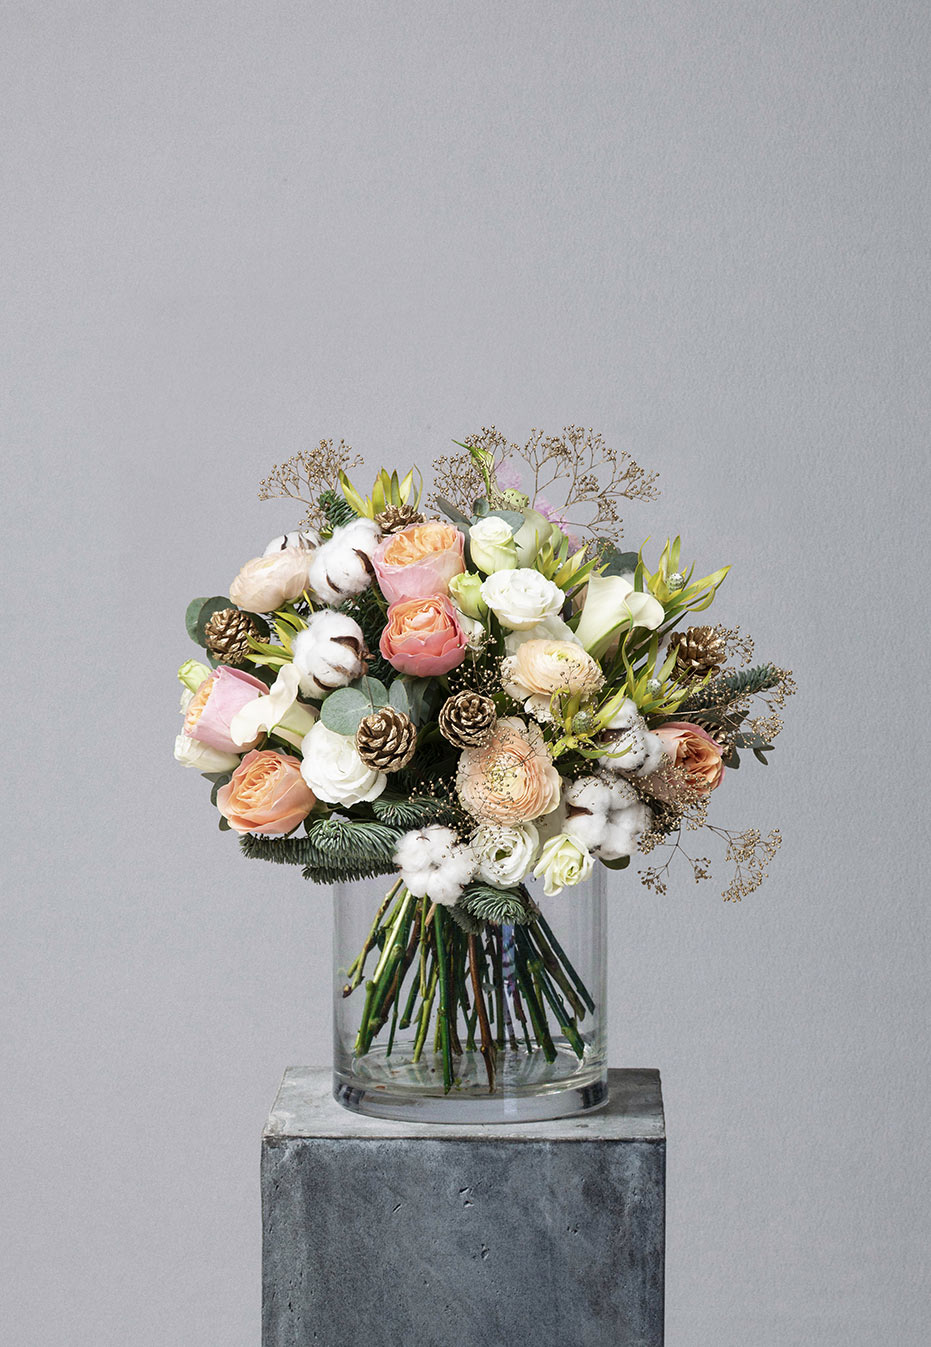 flower bouquet of ranunculus and garden rose by flannel flowers